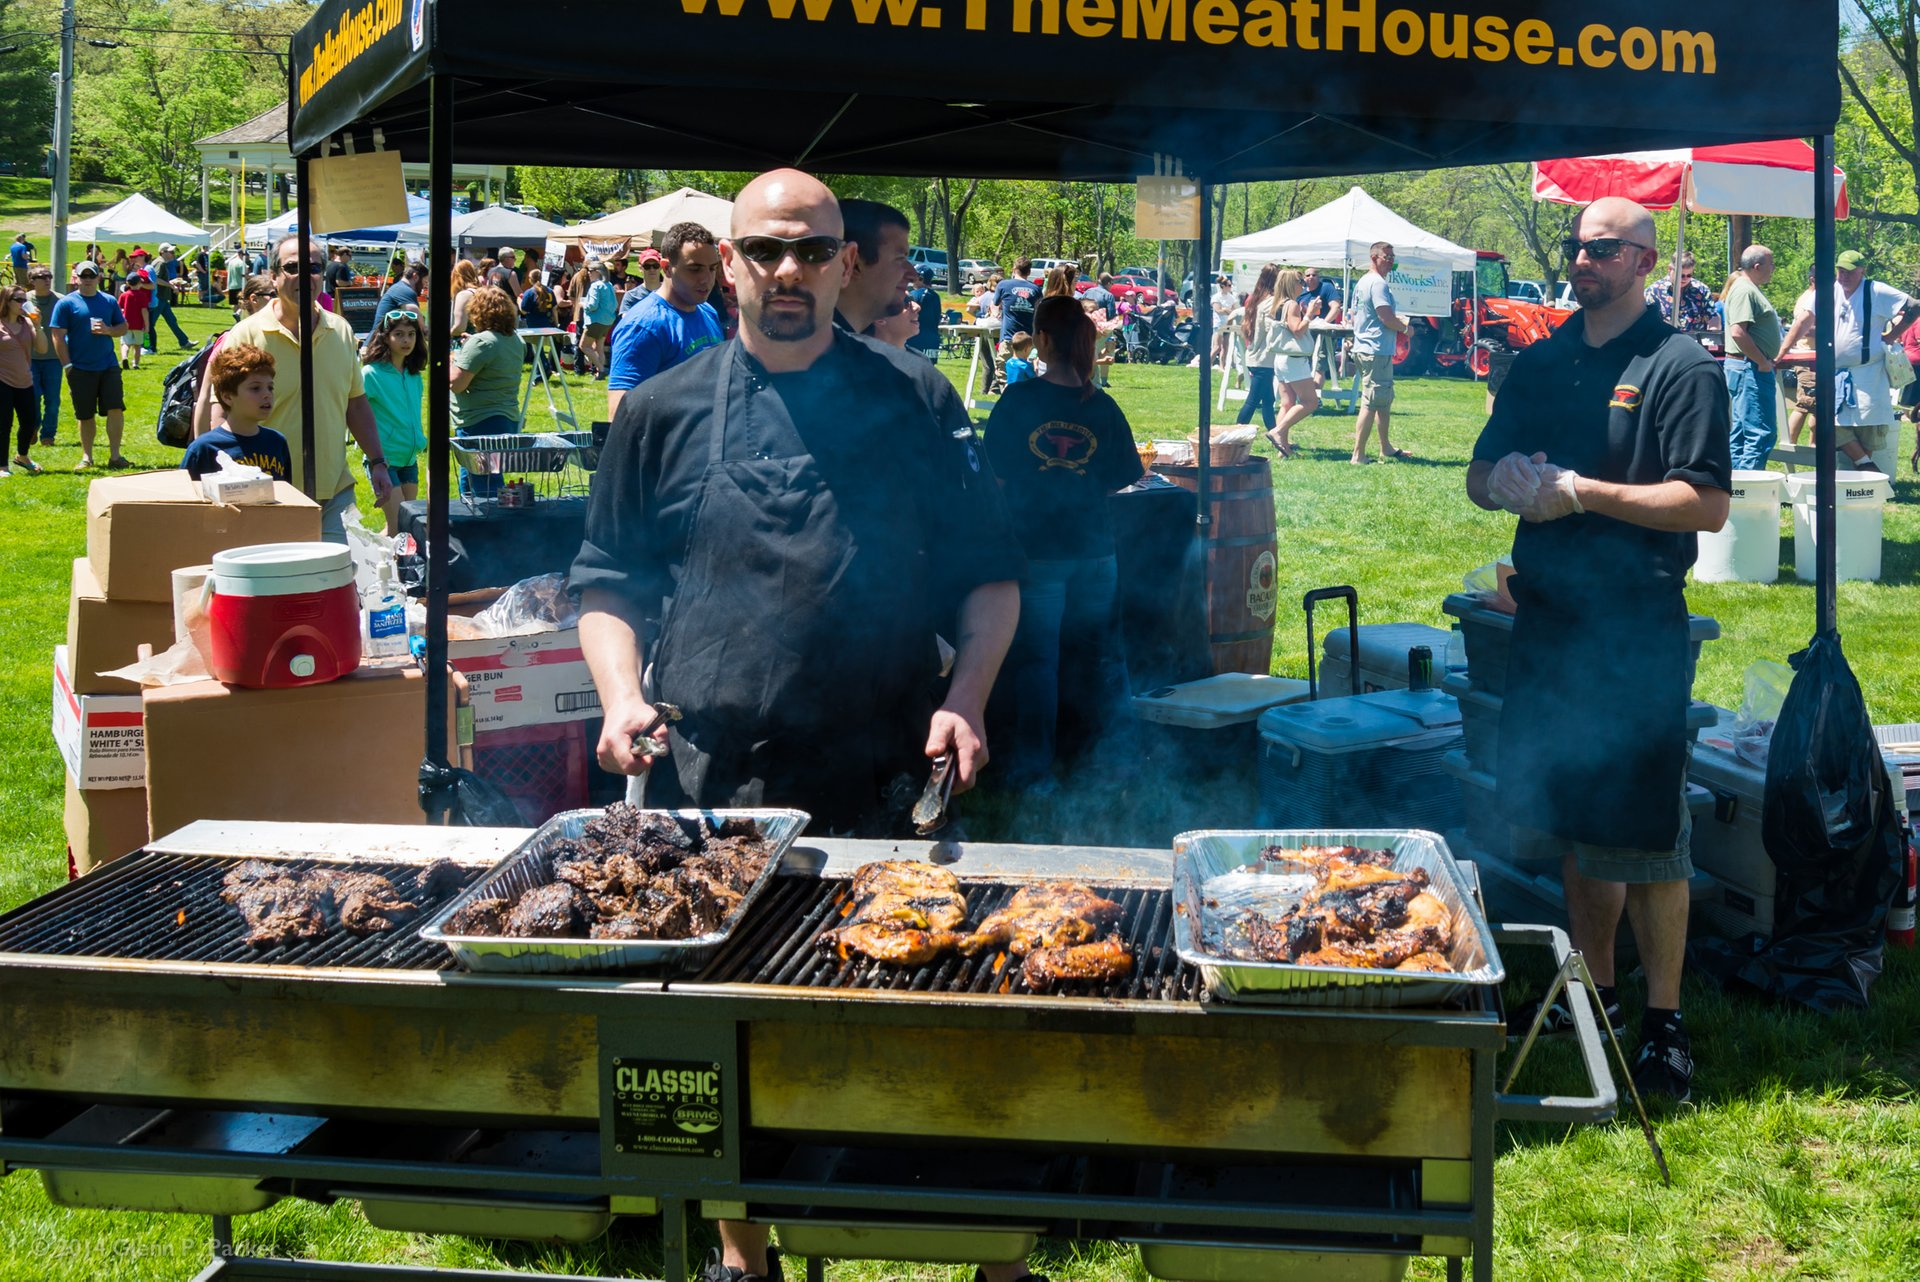 Barbecue Festival in North Carolina 2020 - Best Time